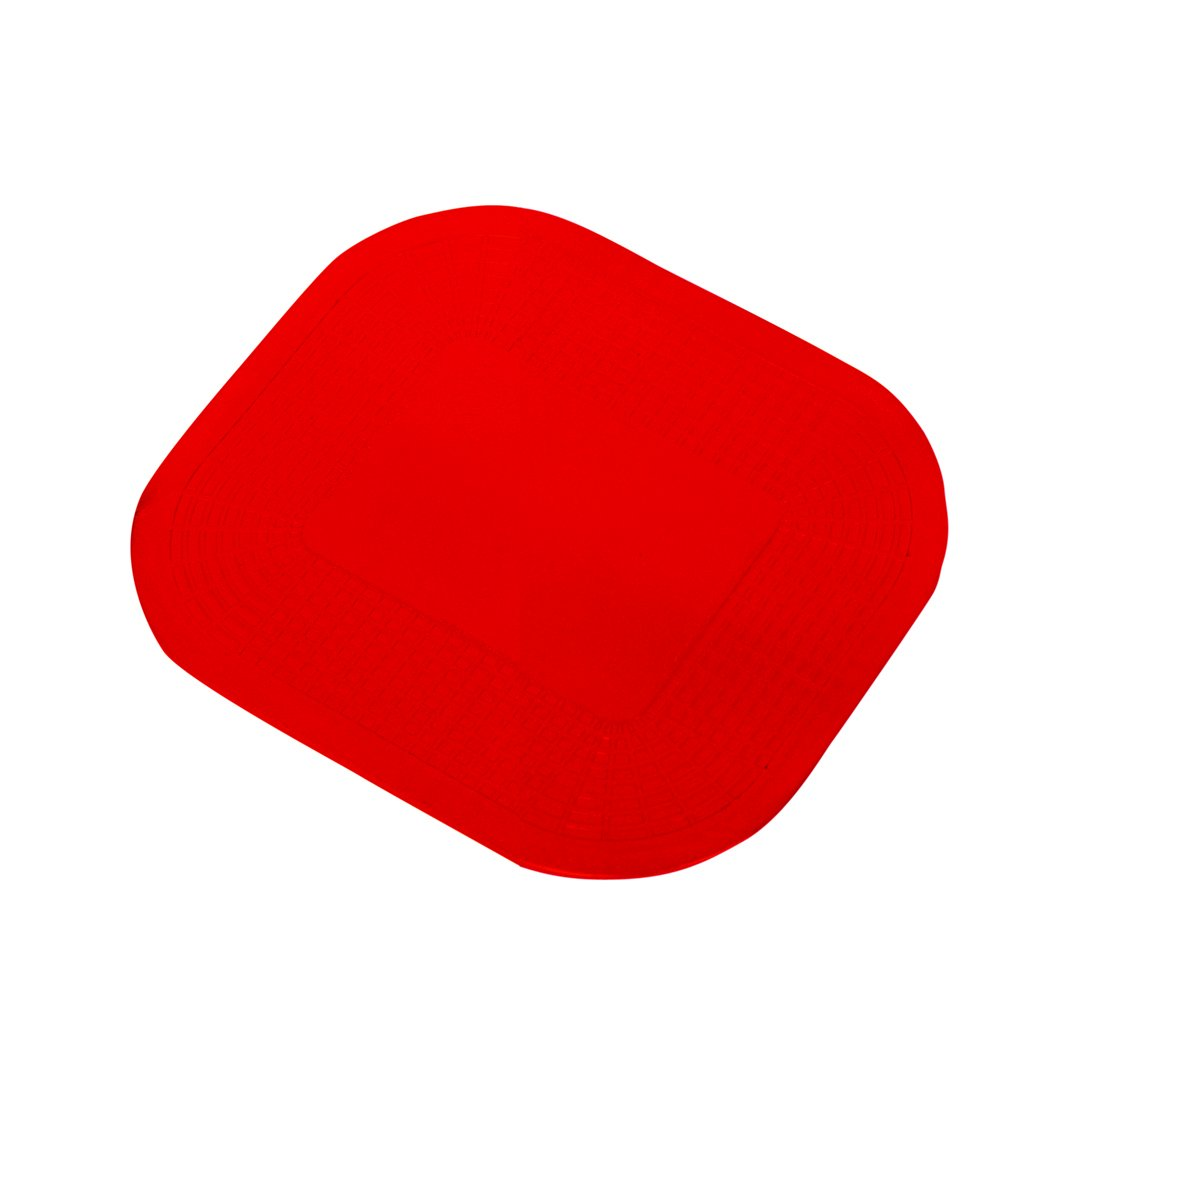 Dycem Non-Slip Pads & Activity Pads, Red, 10'' x 7-1/4'' x 1/8'', Rectangle - Textured